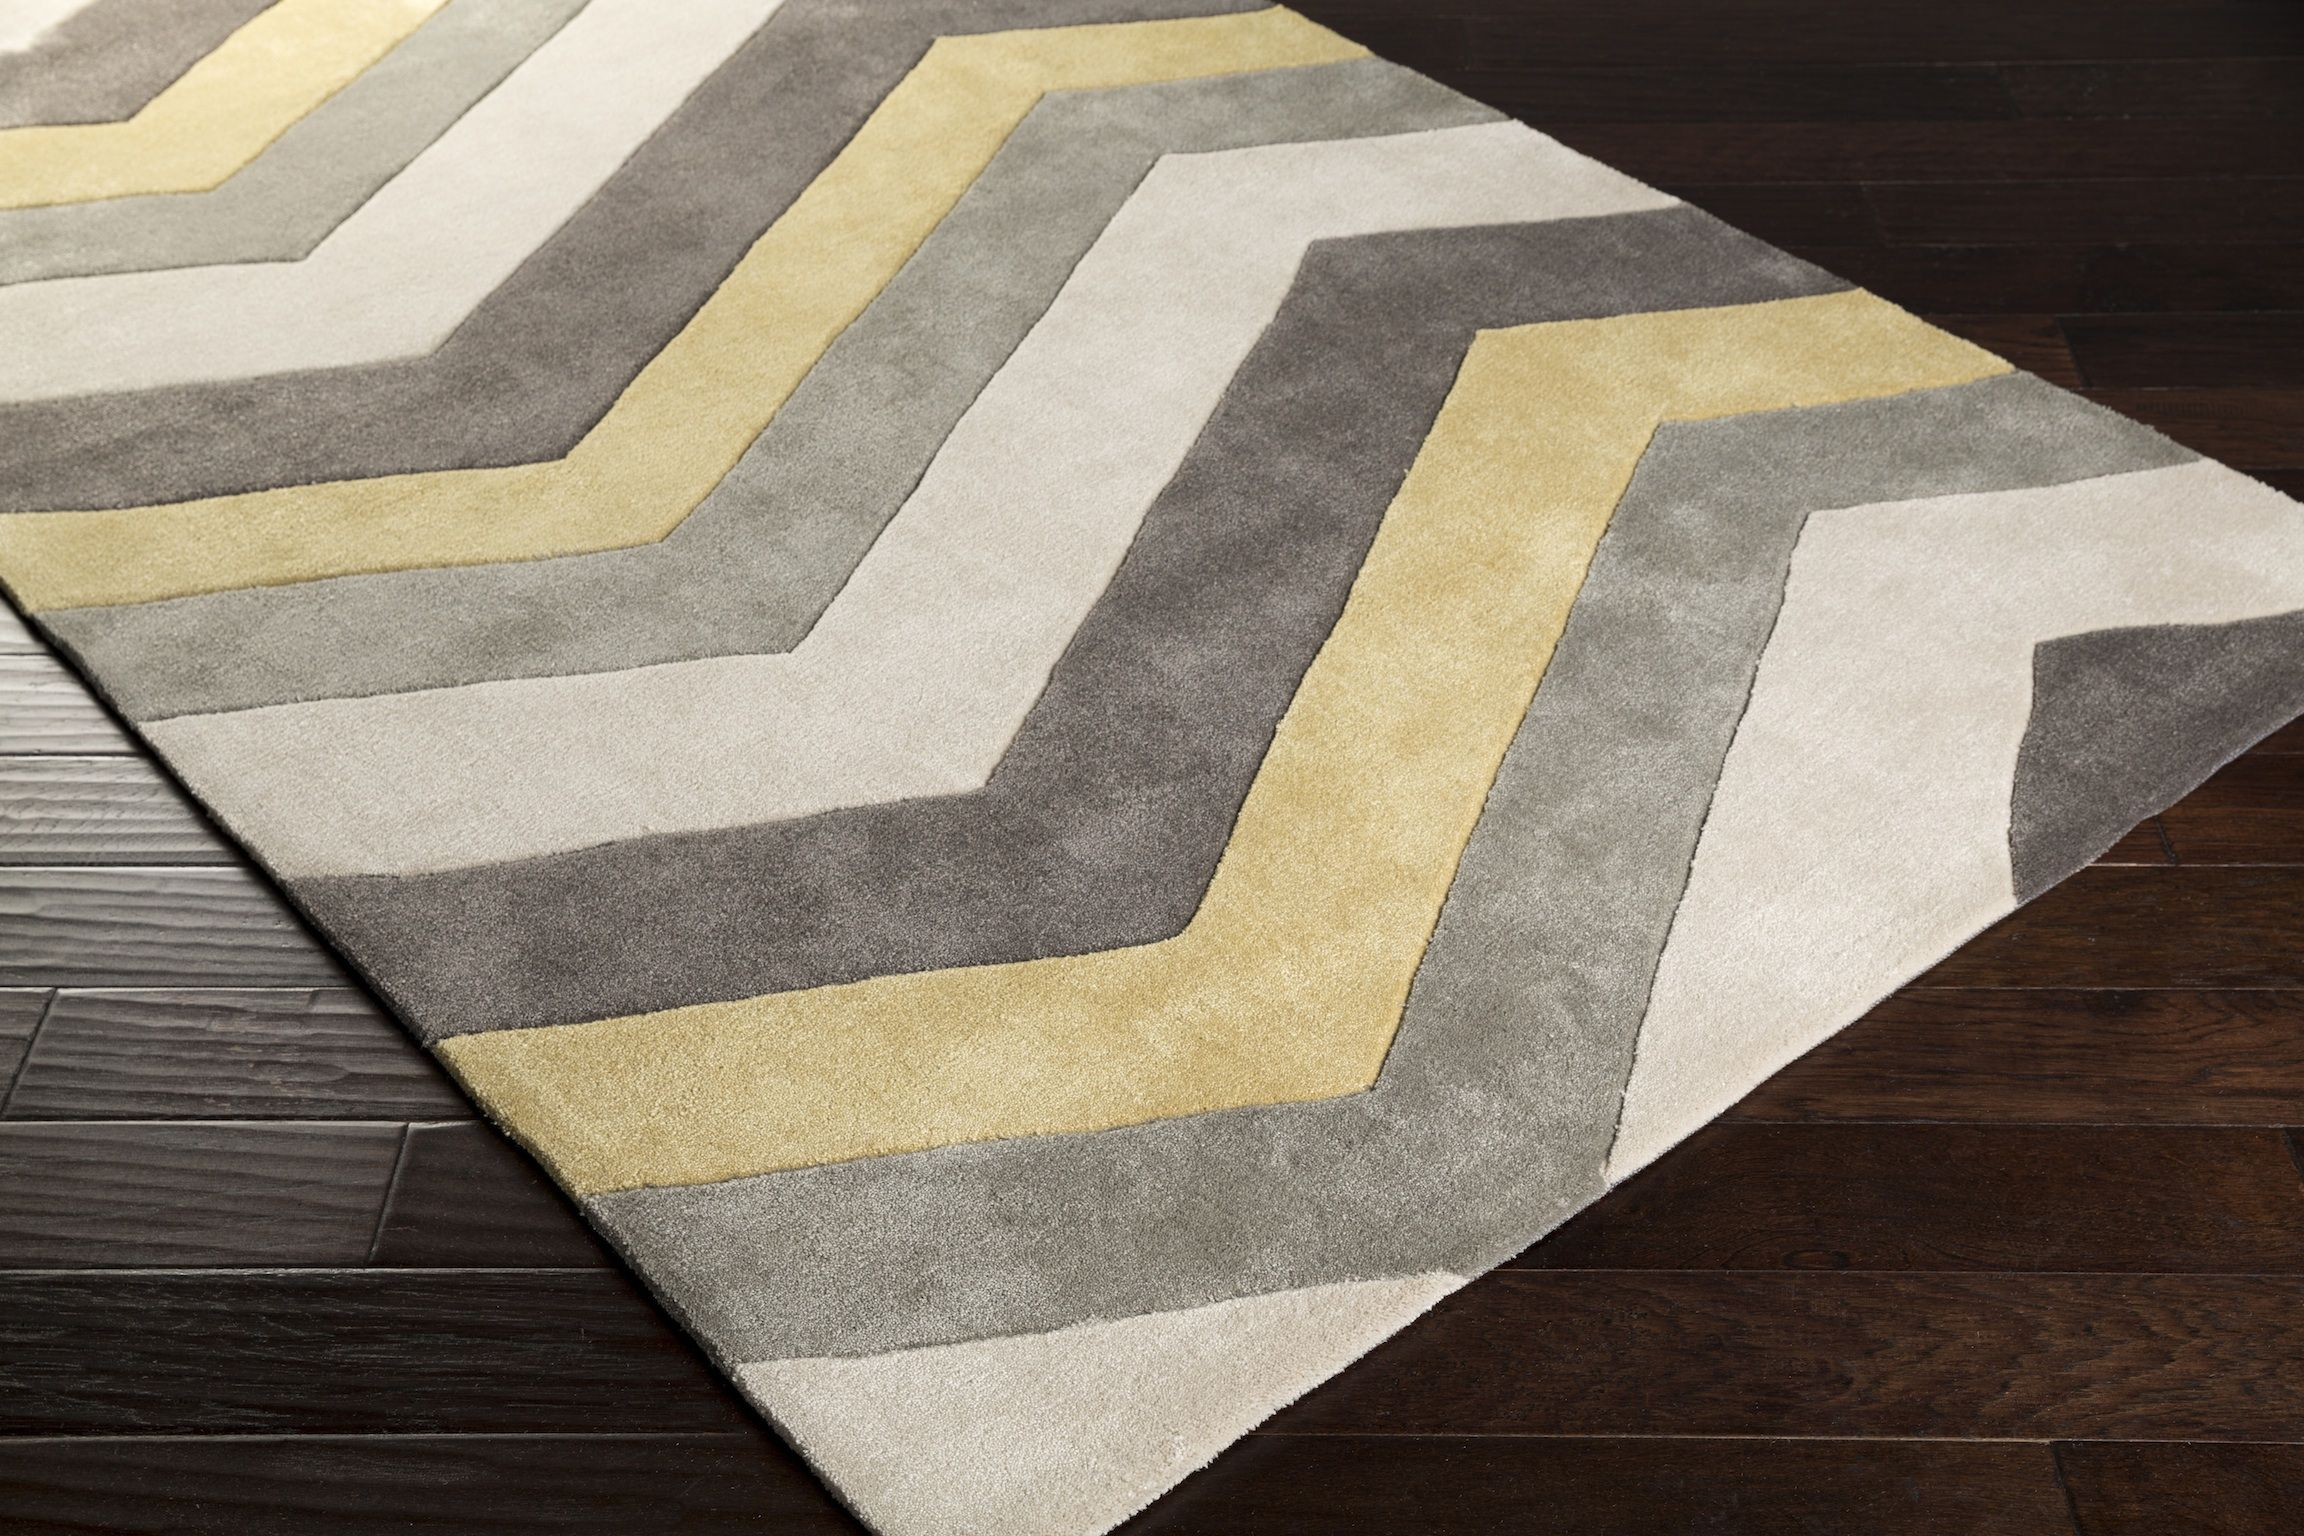 Cosmo Chevron Area Rug In Lime And Gray Color Pantone Tpx Ash Gray 13 0000 Gray 17 0205 Lime 14 1025 Gray 17 150 Chevron Area Rugs Area Rugs Rugs